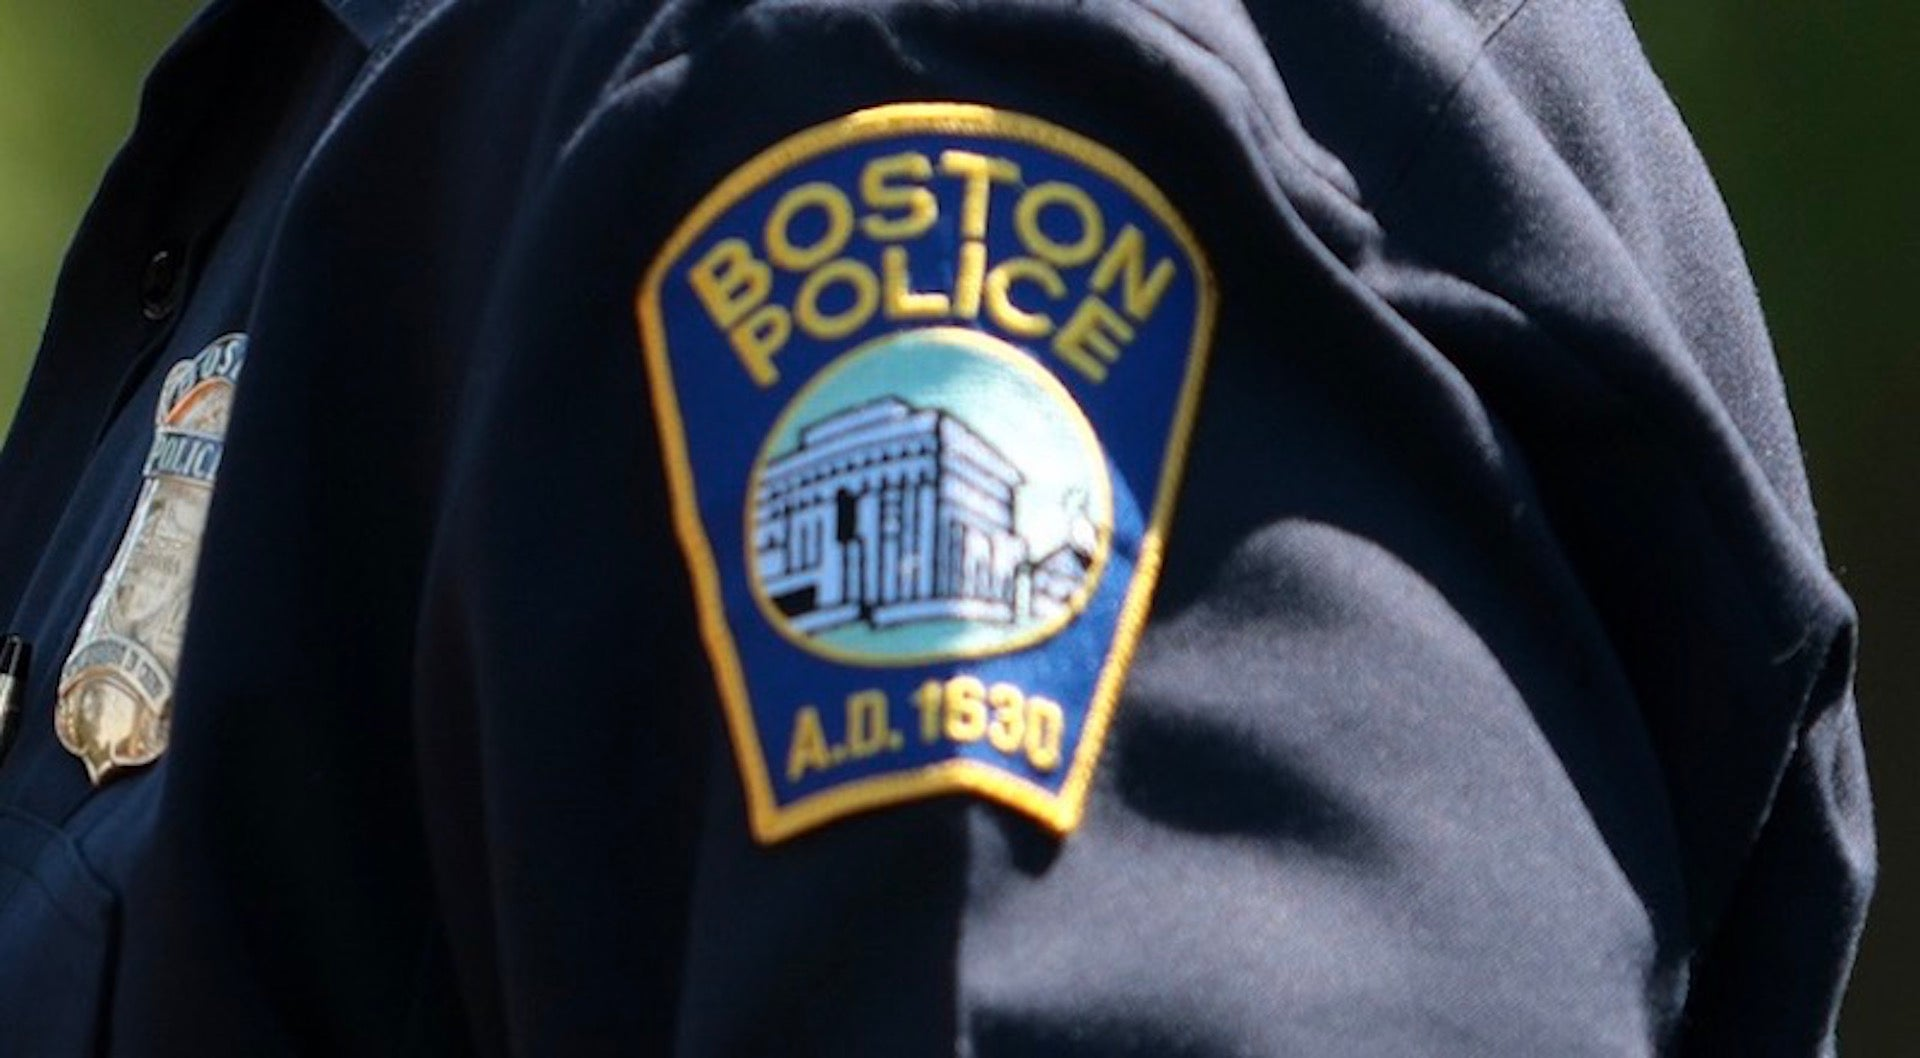 Boston police officer arrested on domestic violence charges, placed on leave 1